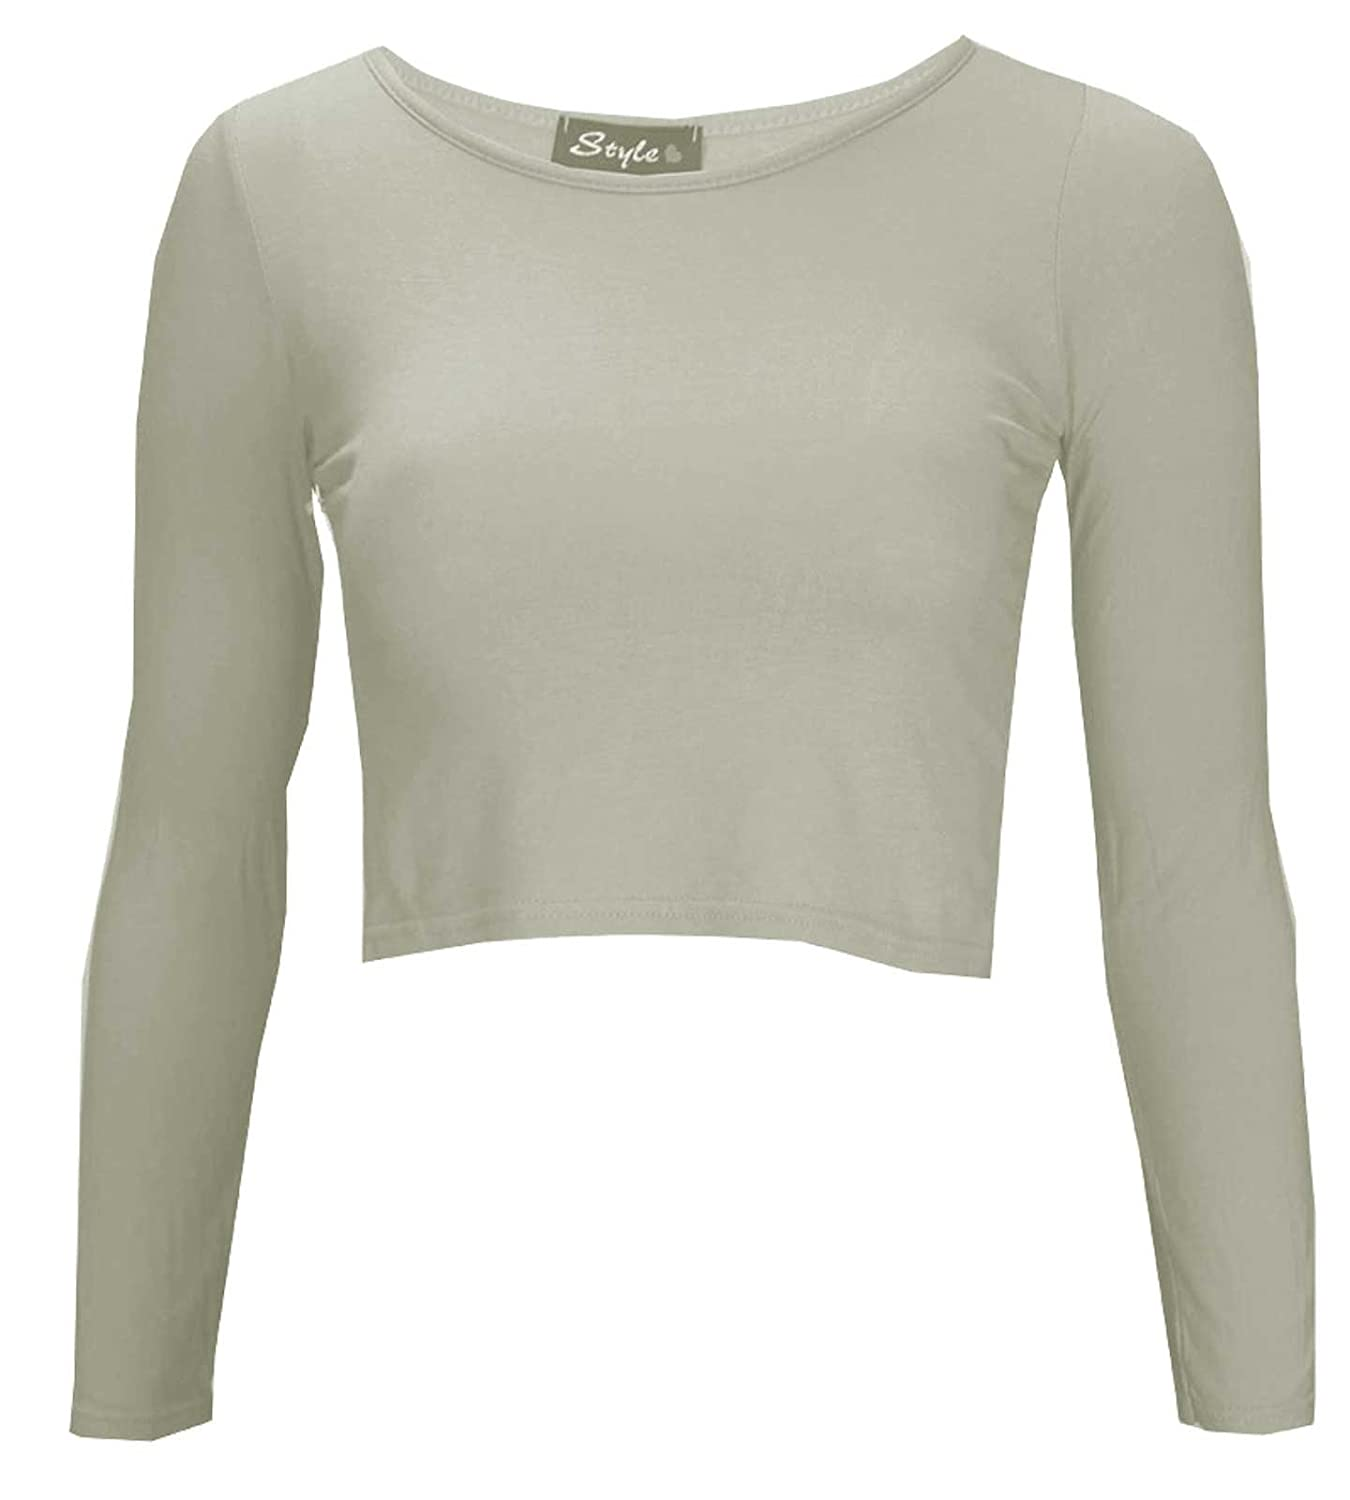 NEW WOMEN LADIES ROUND NECK LONG SLEEVE CROP TOP PLAIN T SHIRT SIZE 8-14